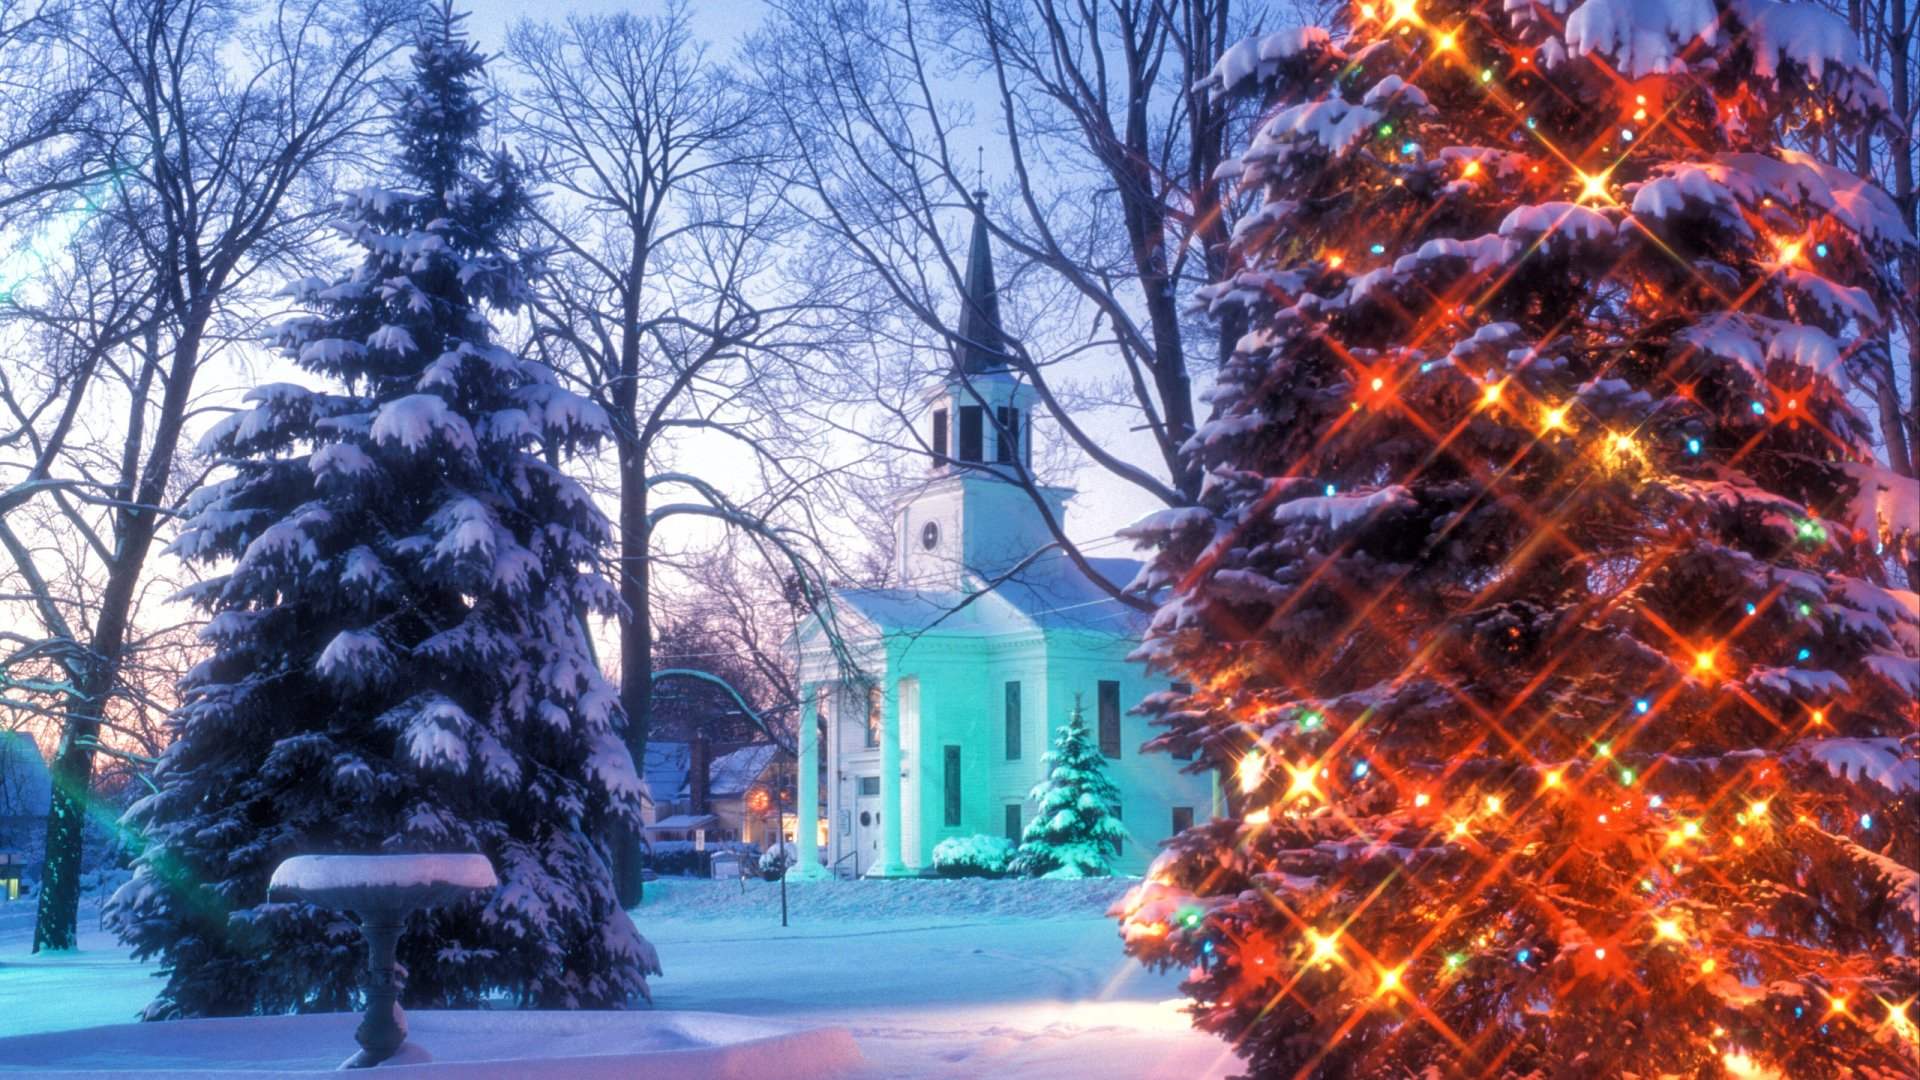 Falling Snow Wallpaper Iphone 5 Christmas In Vermont Hd Wallpaper Background Image